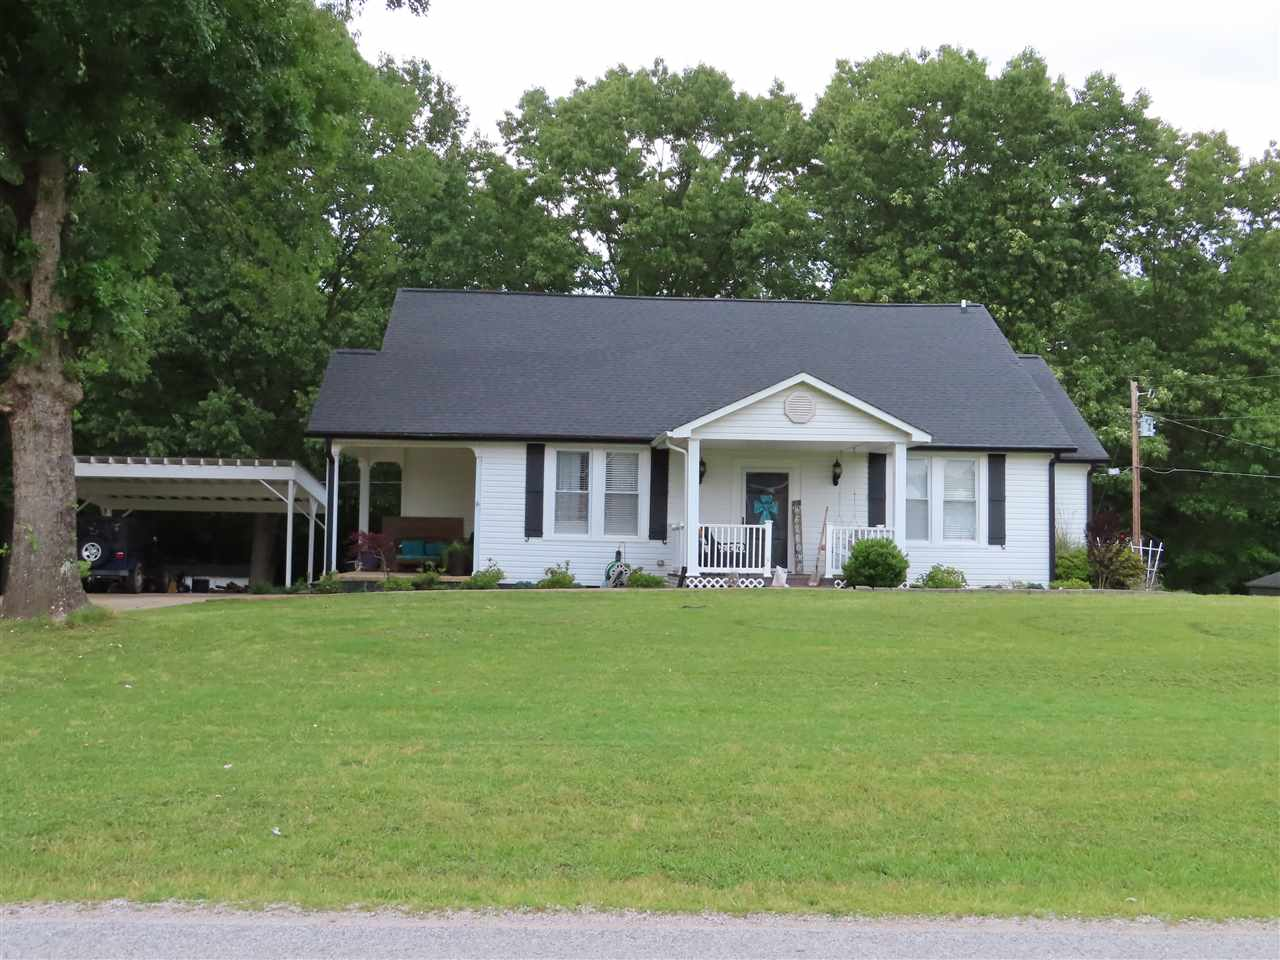 715 Williams Road,Henderson,Tennessee 38340,3 Bedrooms Bedrooms,3 BathroomsBathrooms,Residential,715 Williams Road,188301